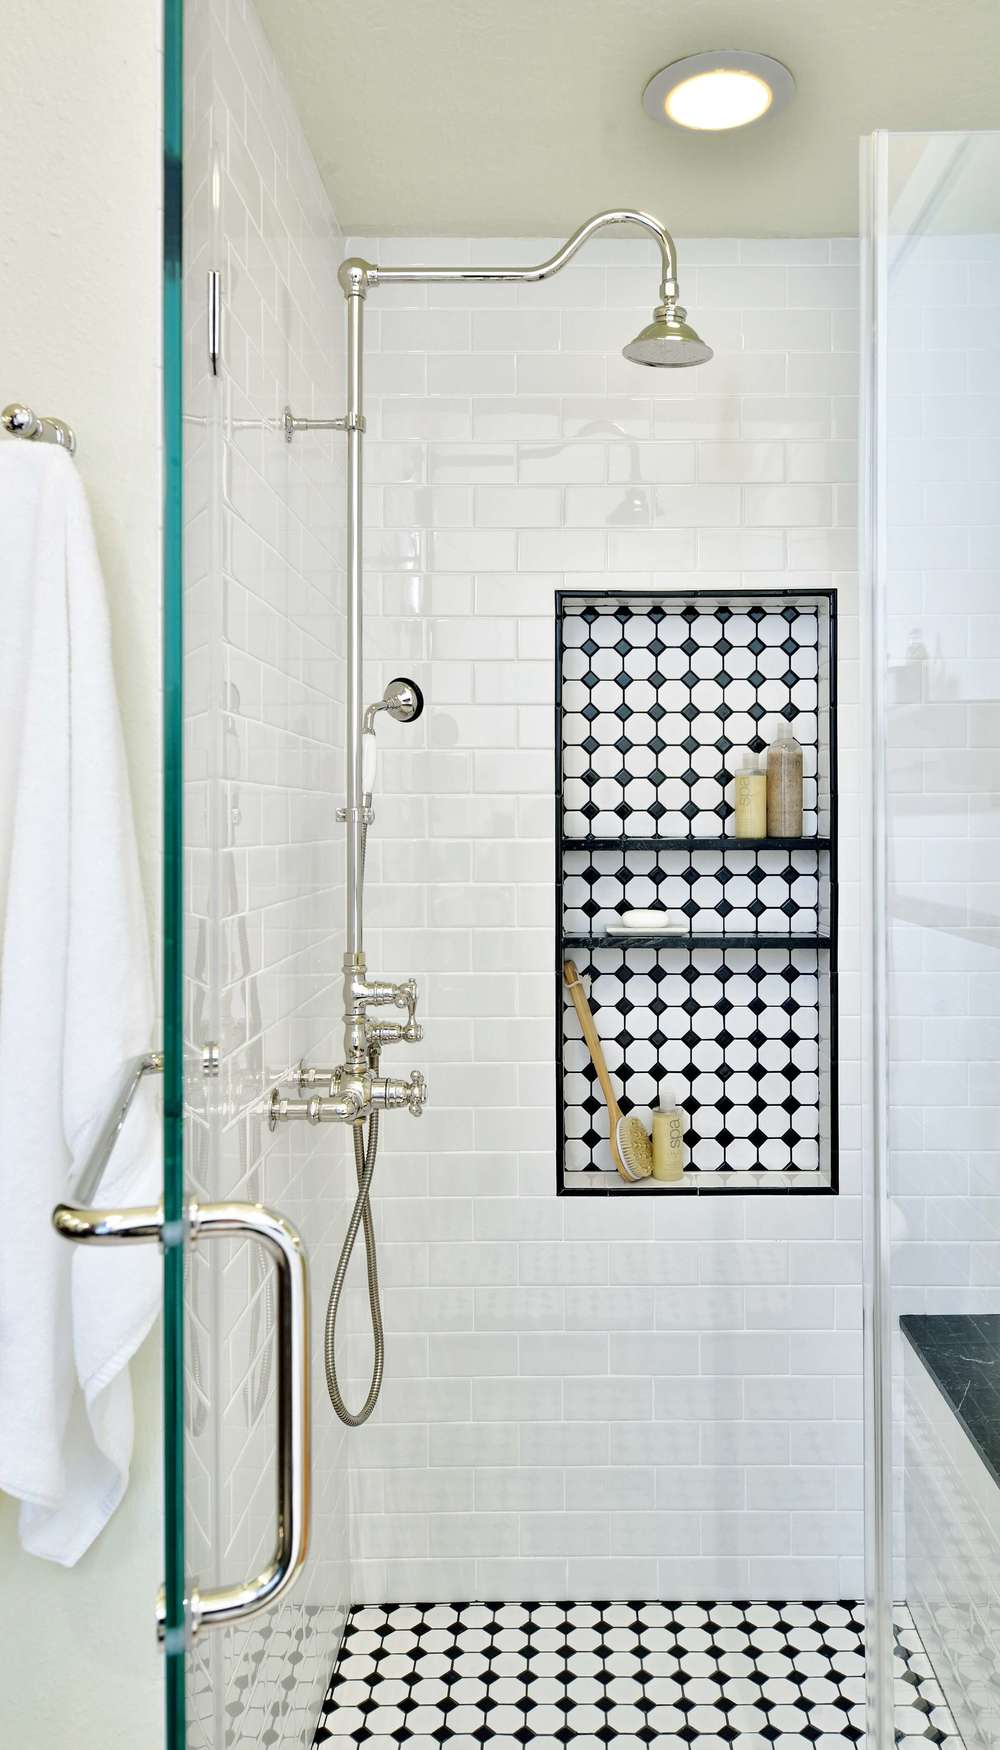 Vintage tile in shower with shampoo niche, Designer: Carla Aston